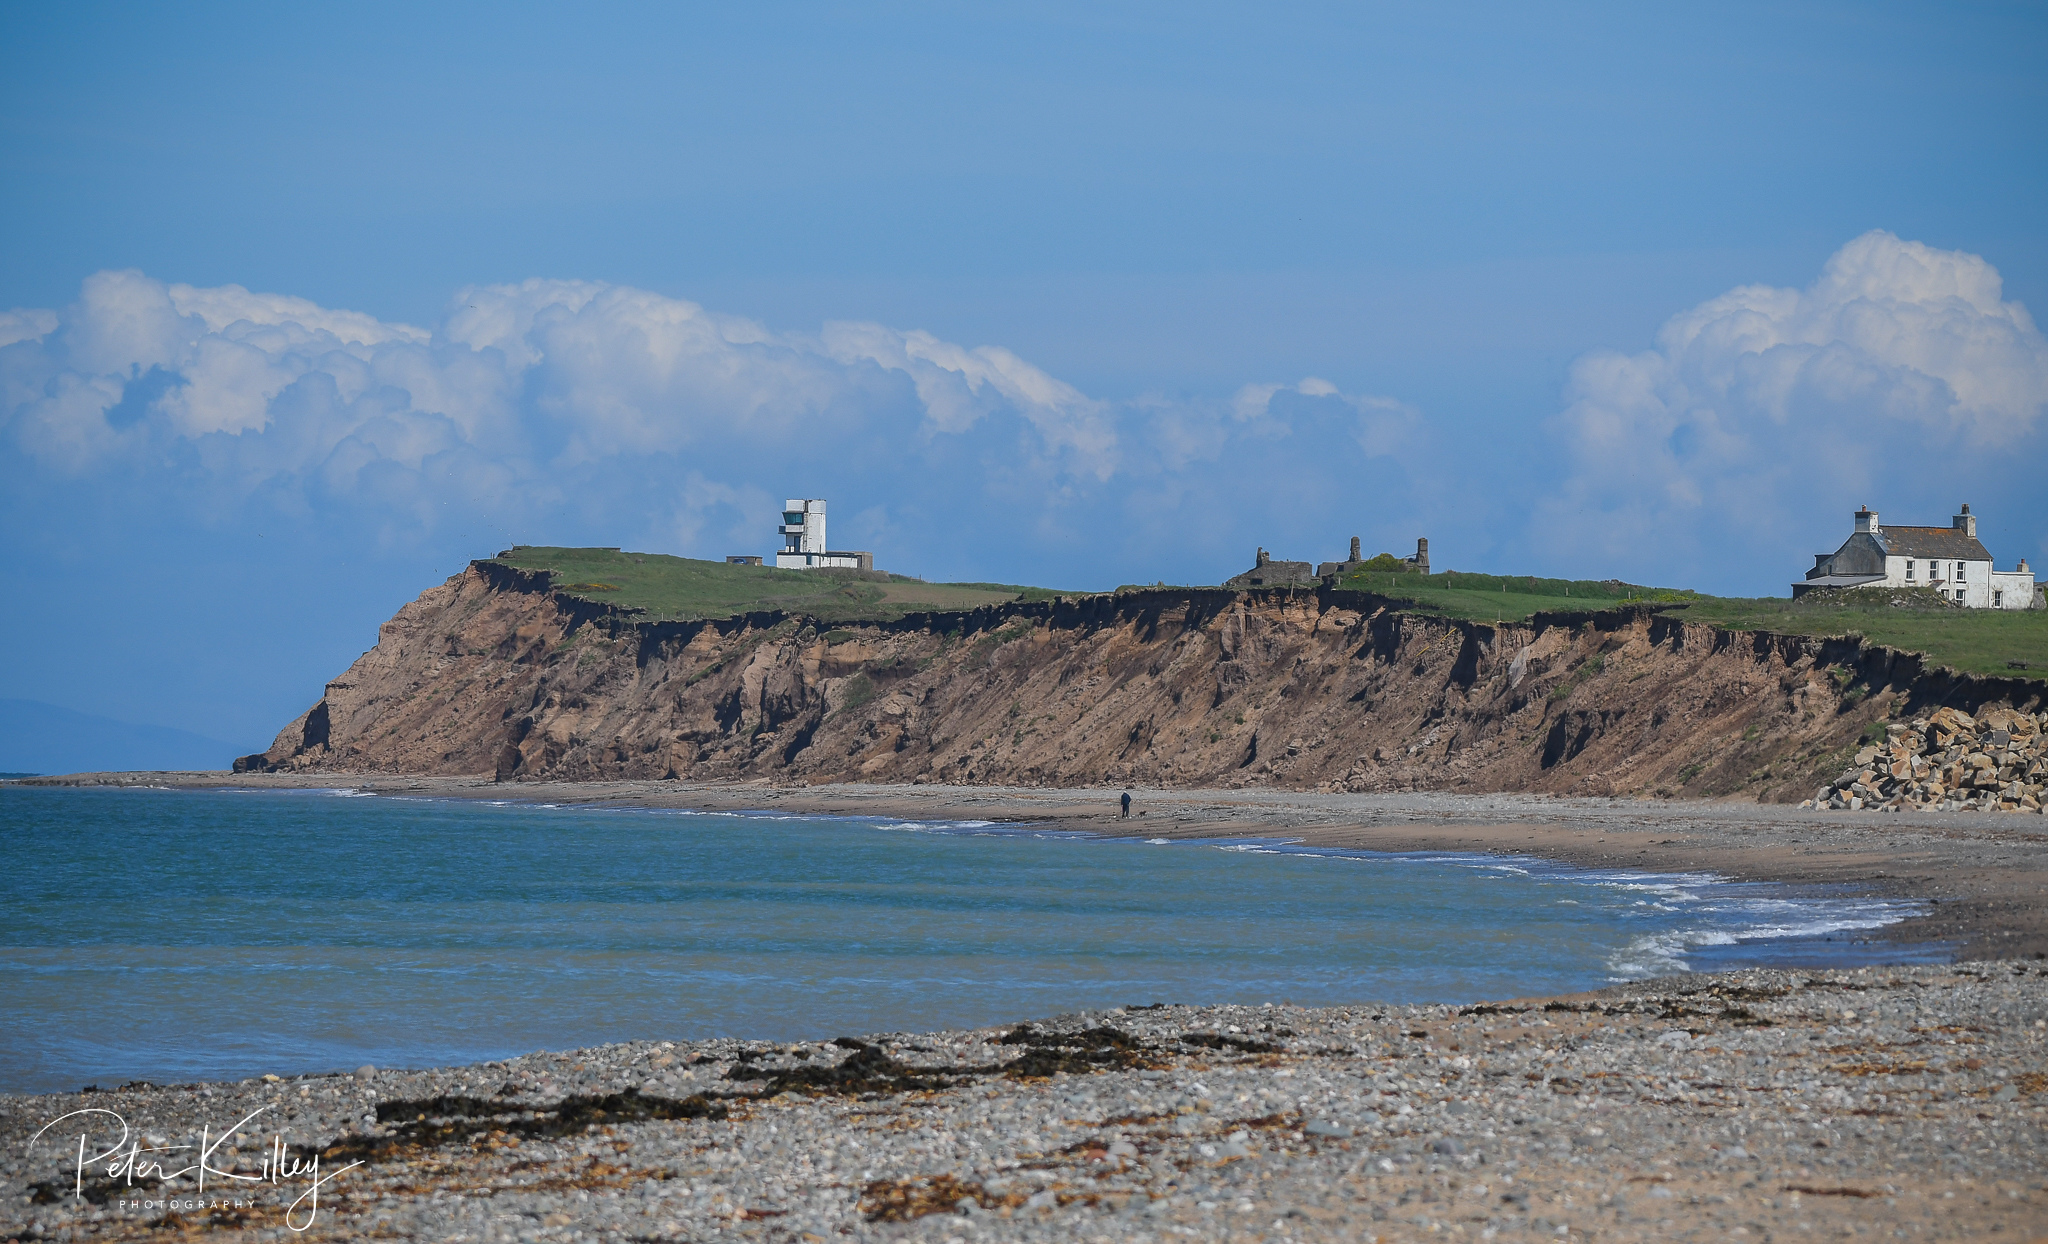 Jurby Head © Peter Killey - www.manxscenes.com